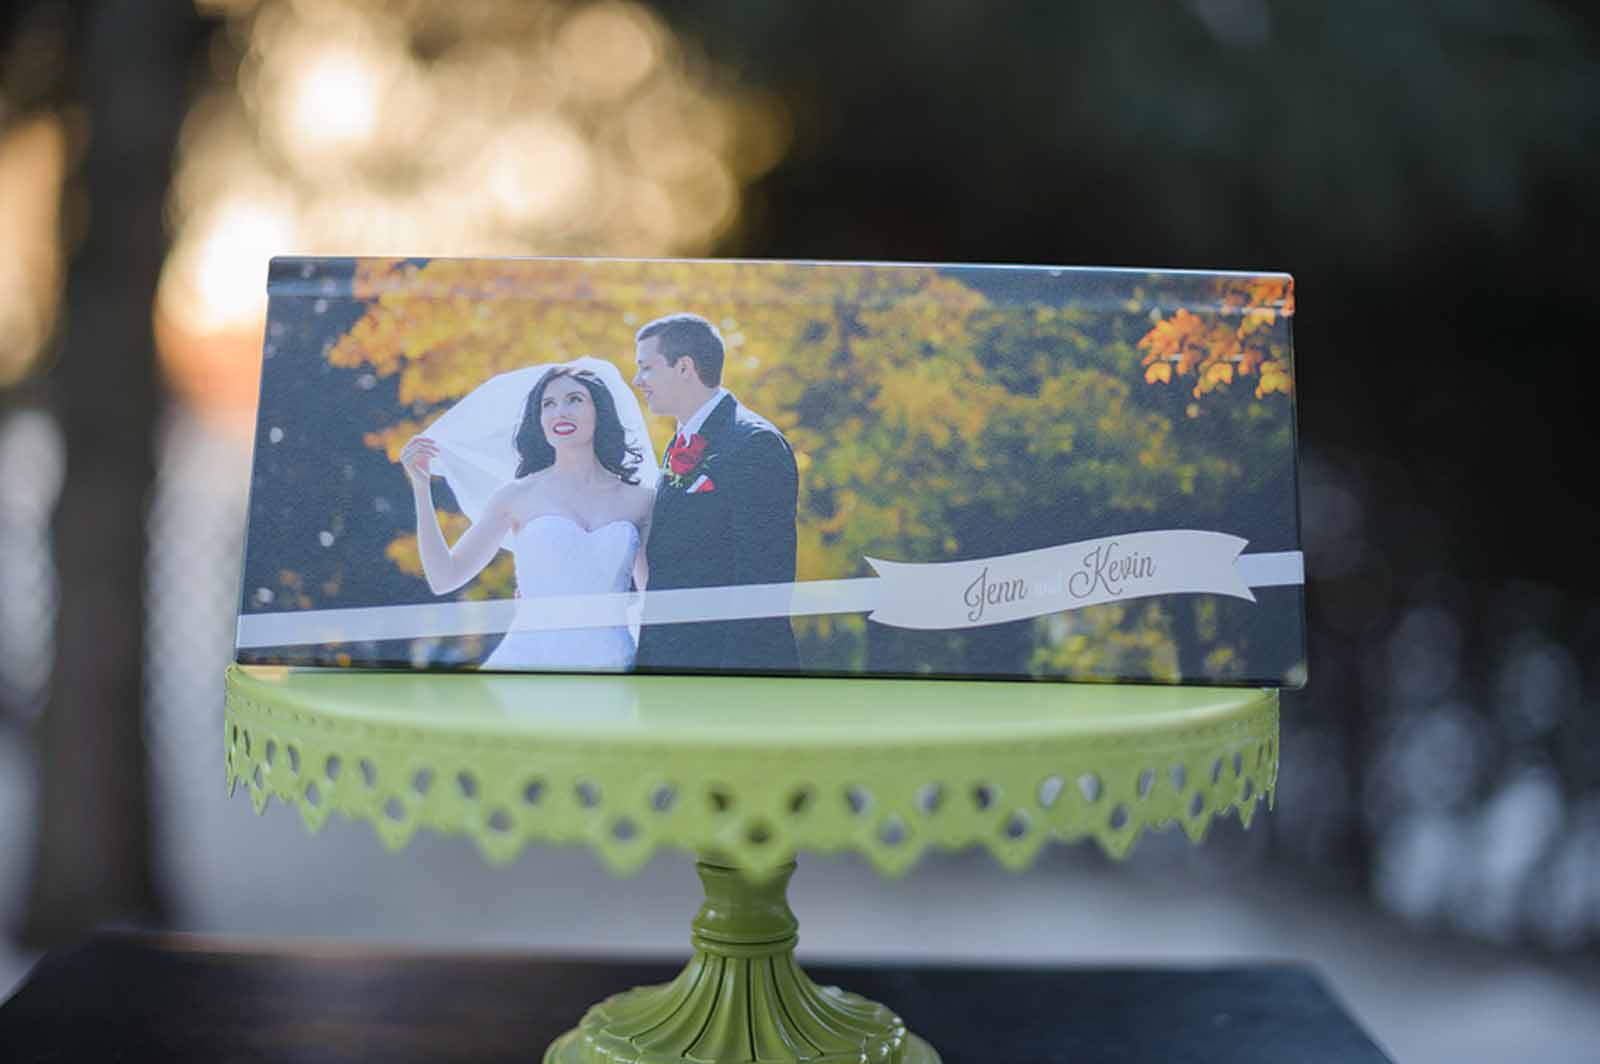 PanoVista wedding album displayed on a green cake stand